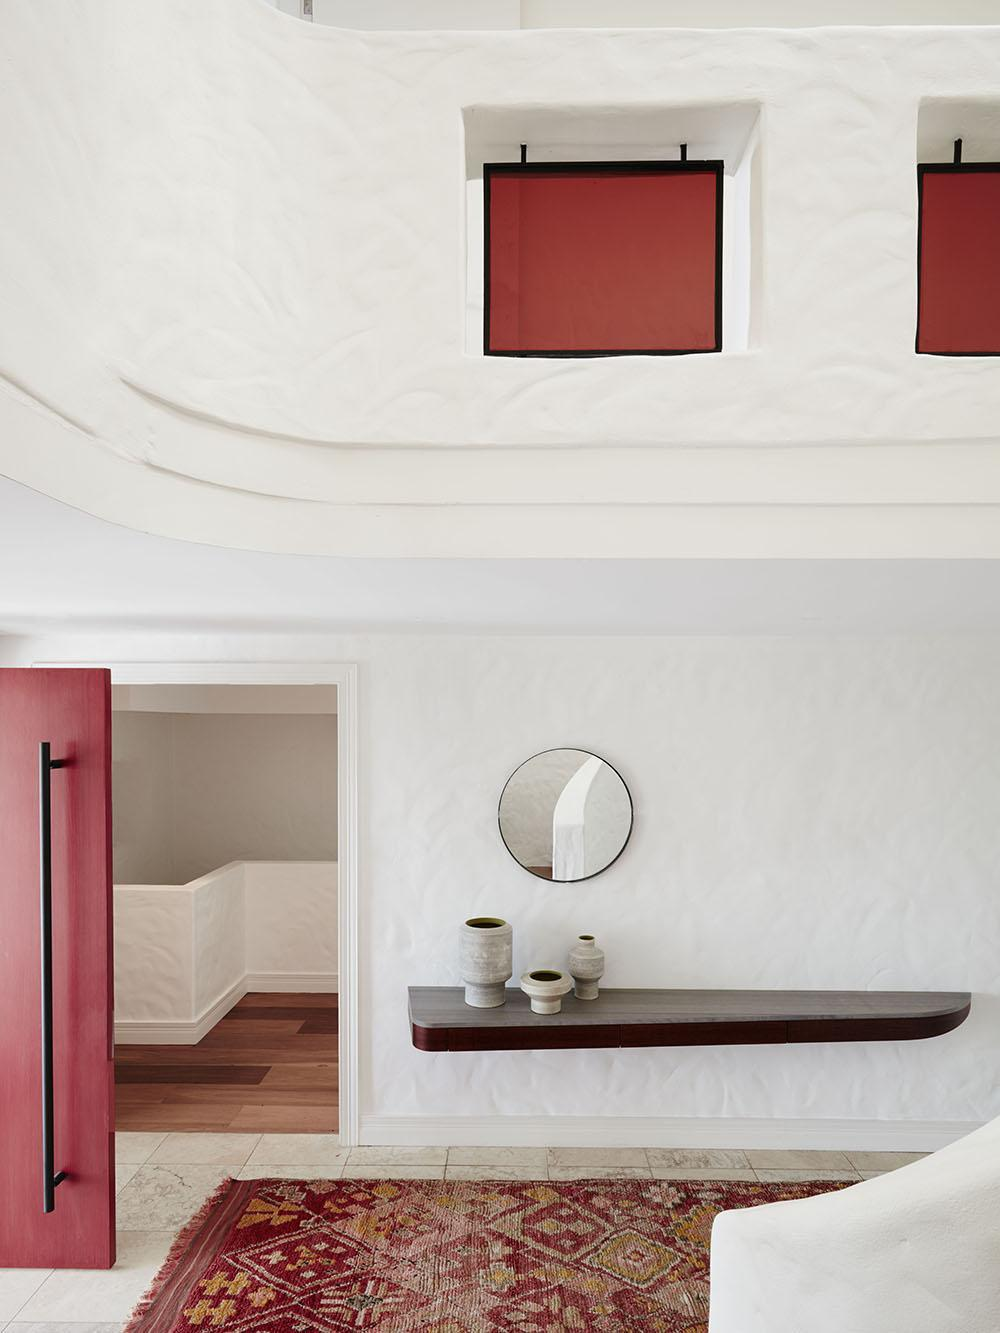 Inside House by Amber Road - Sydney, NSW, Australia - Photographed by Prue Ruscoe - Interior Design & Architecture - Image 4